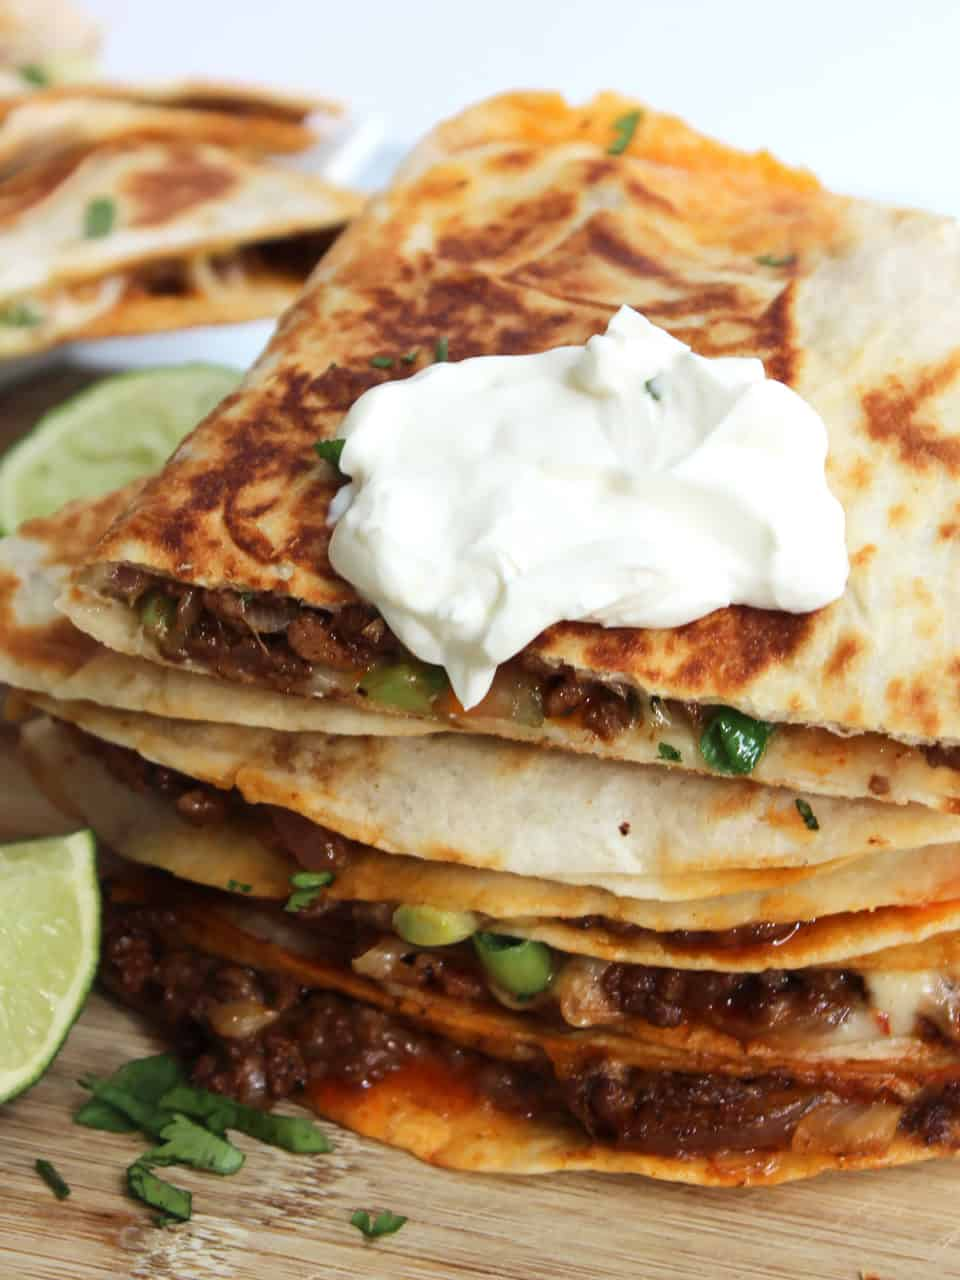 Sour cream served on top of beef and cheese quesadillas.